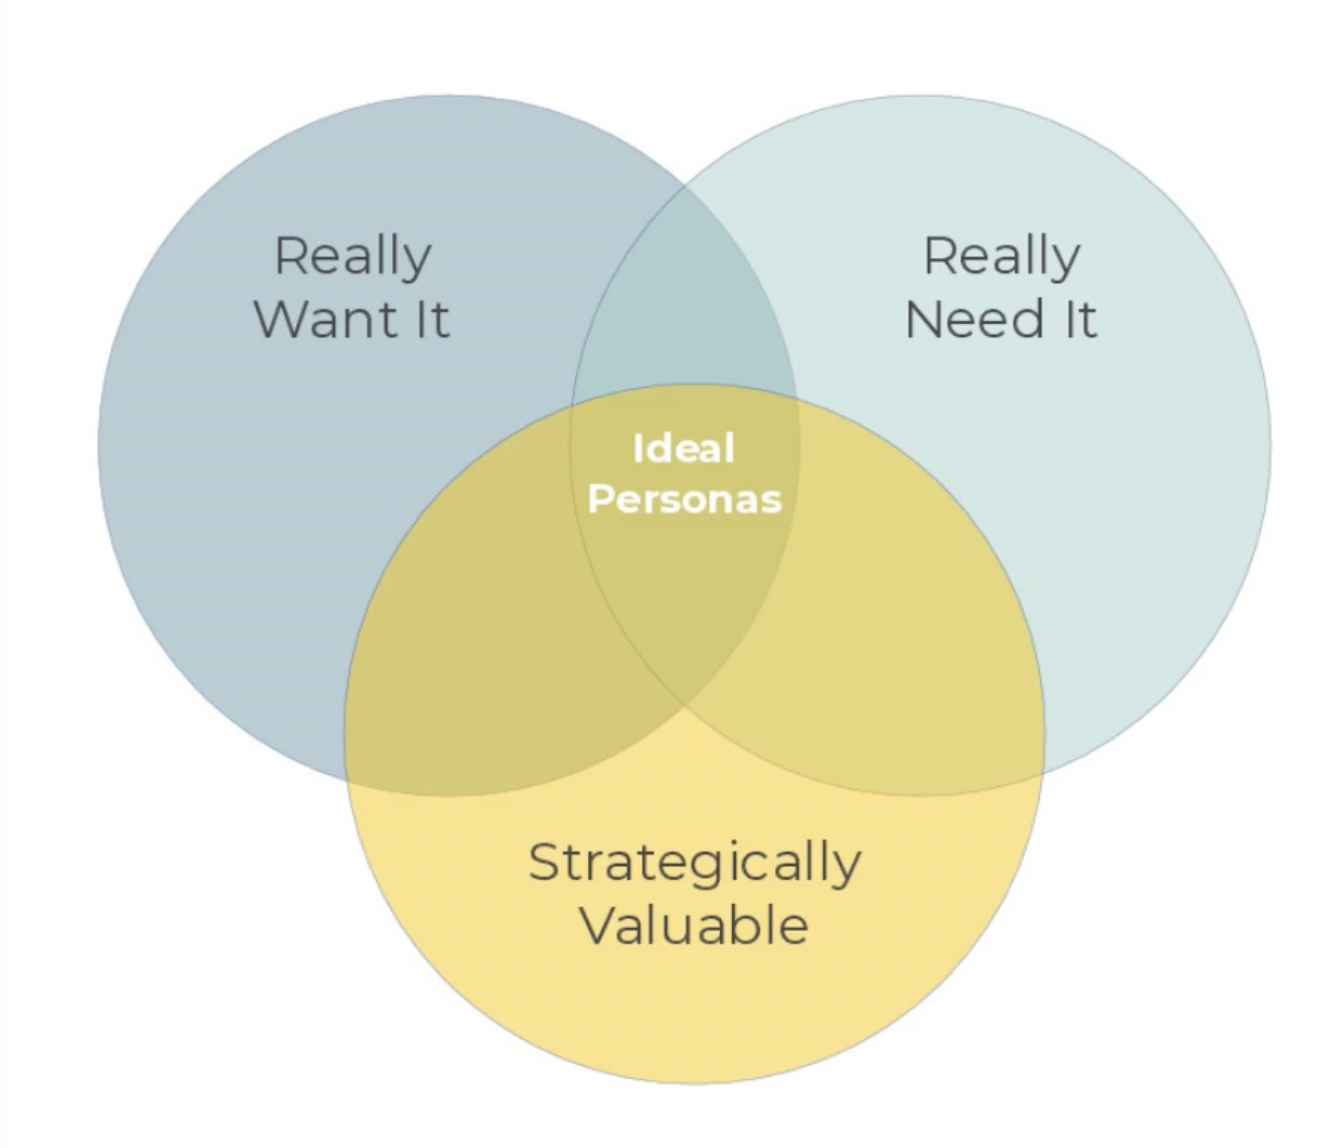 Picking Personas for Data Product - Ideal